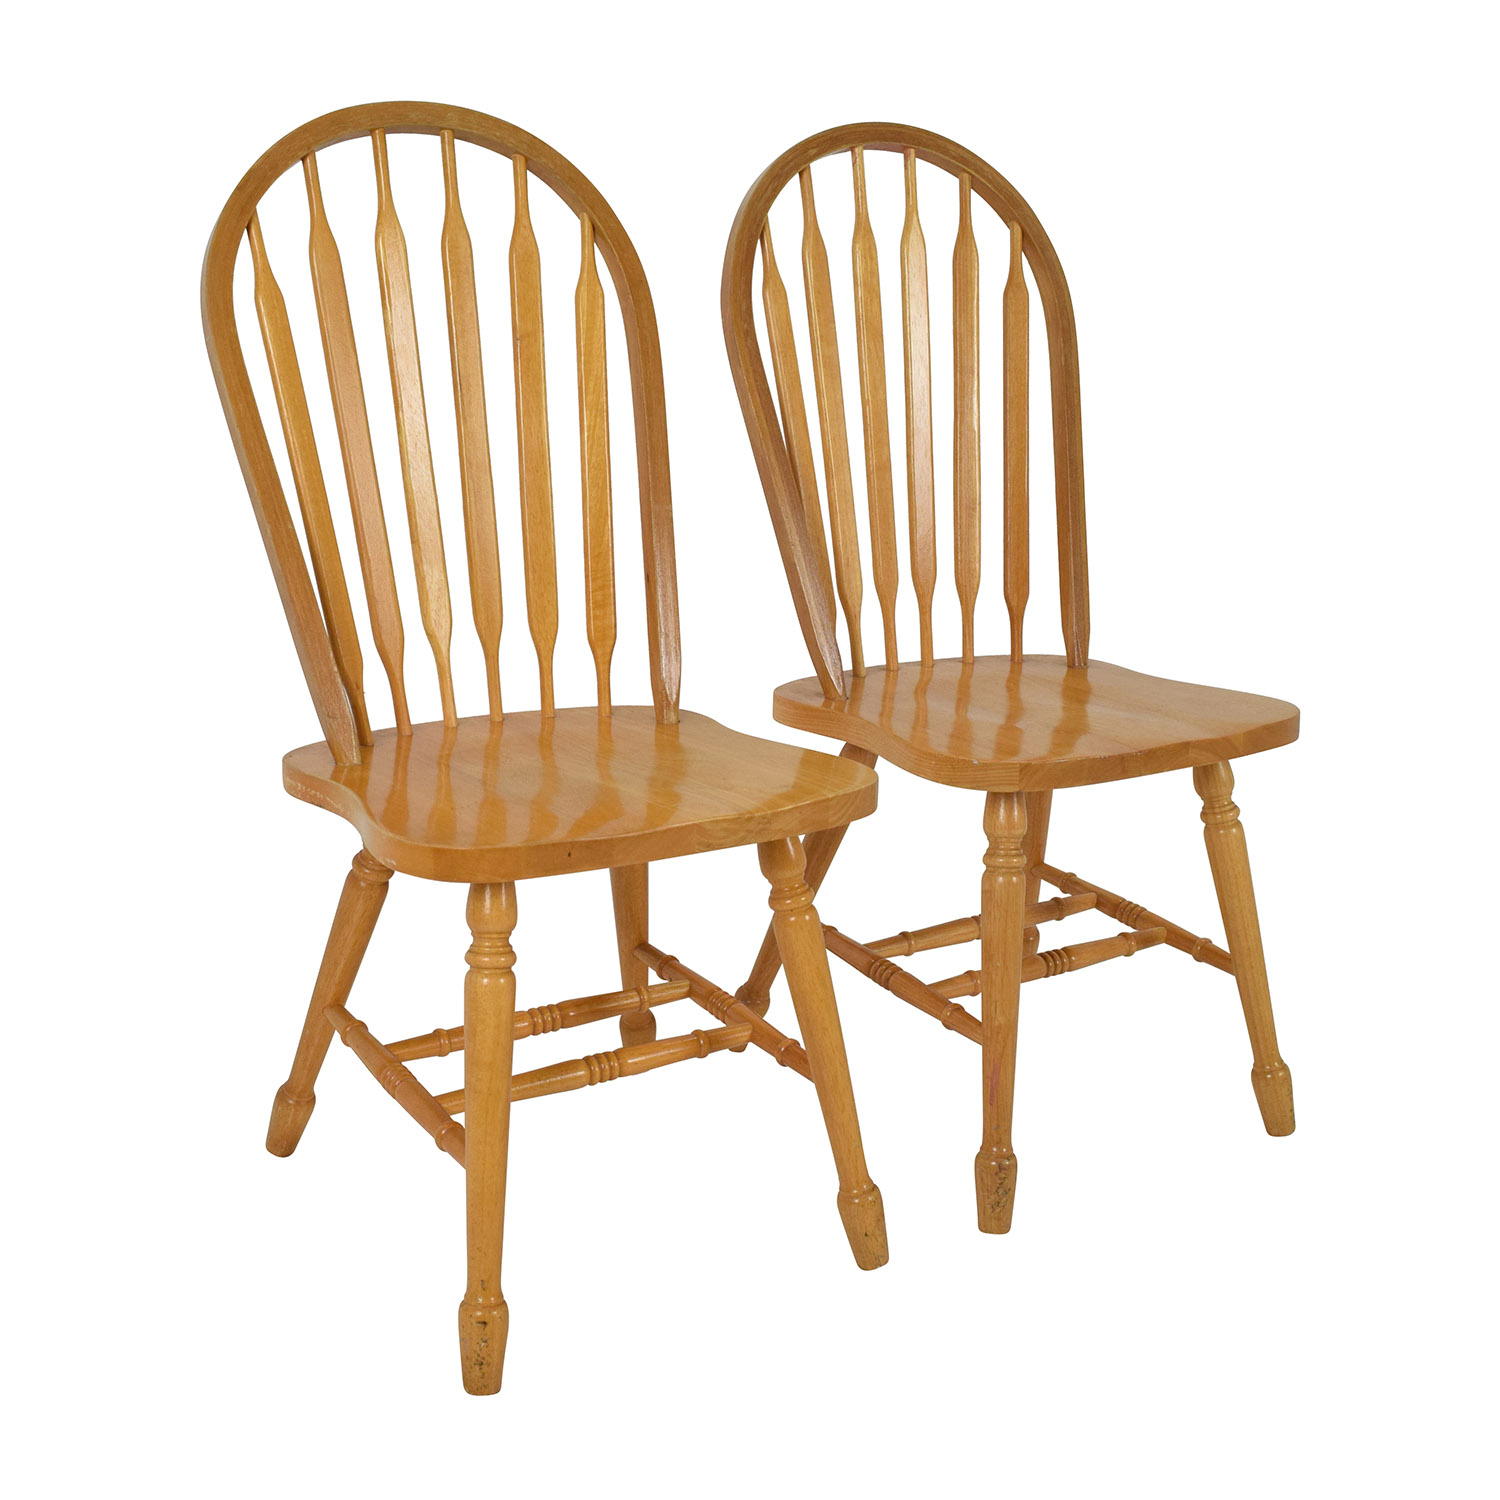 90 Off Coaster Furniture Coaster Furniture Windsor Wood Dining Chairs Chairs